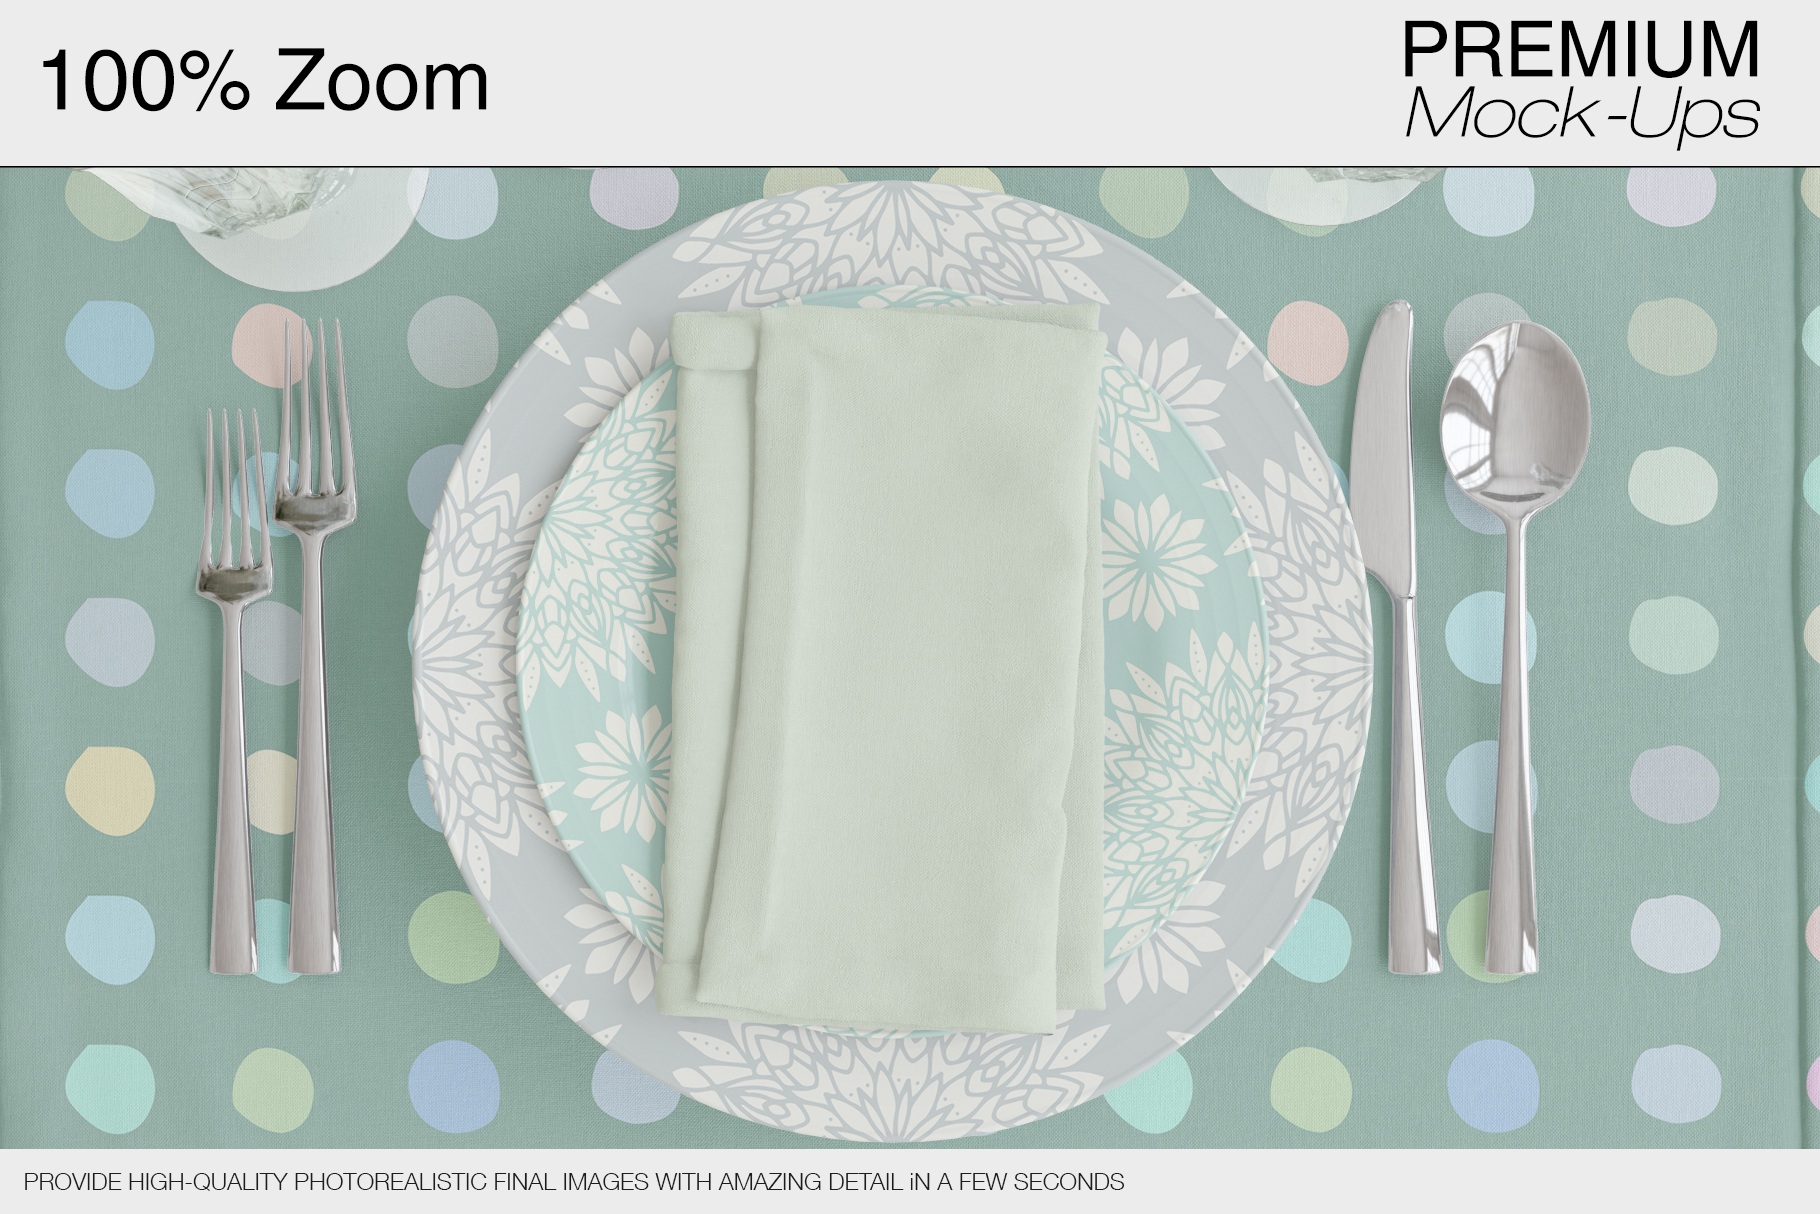 Tablecloth, Runner, Napkins & Plates example image 3